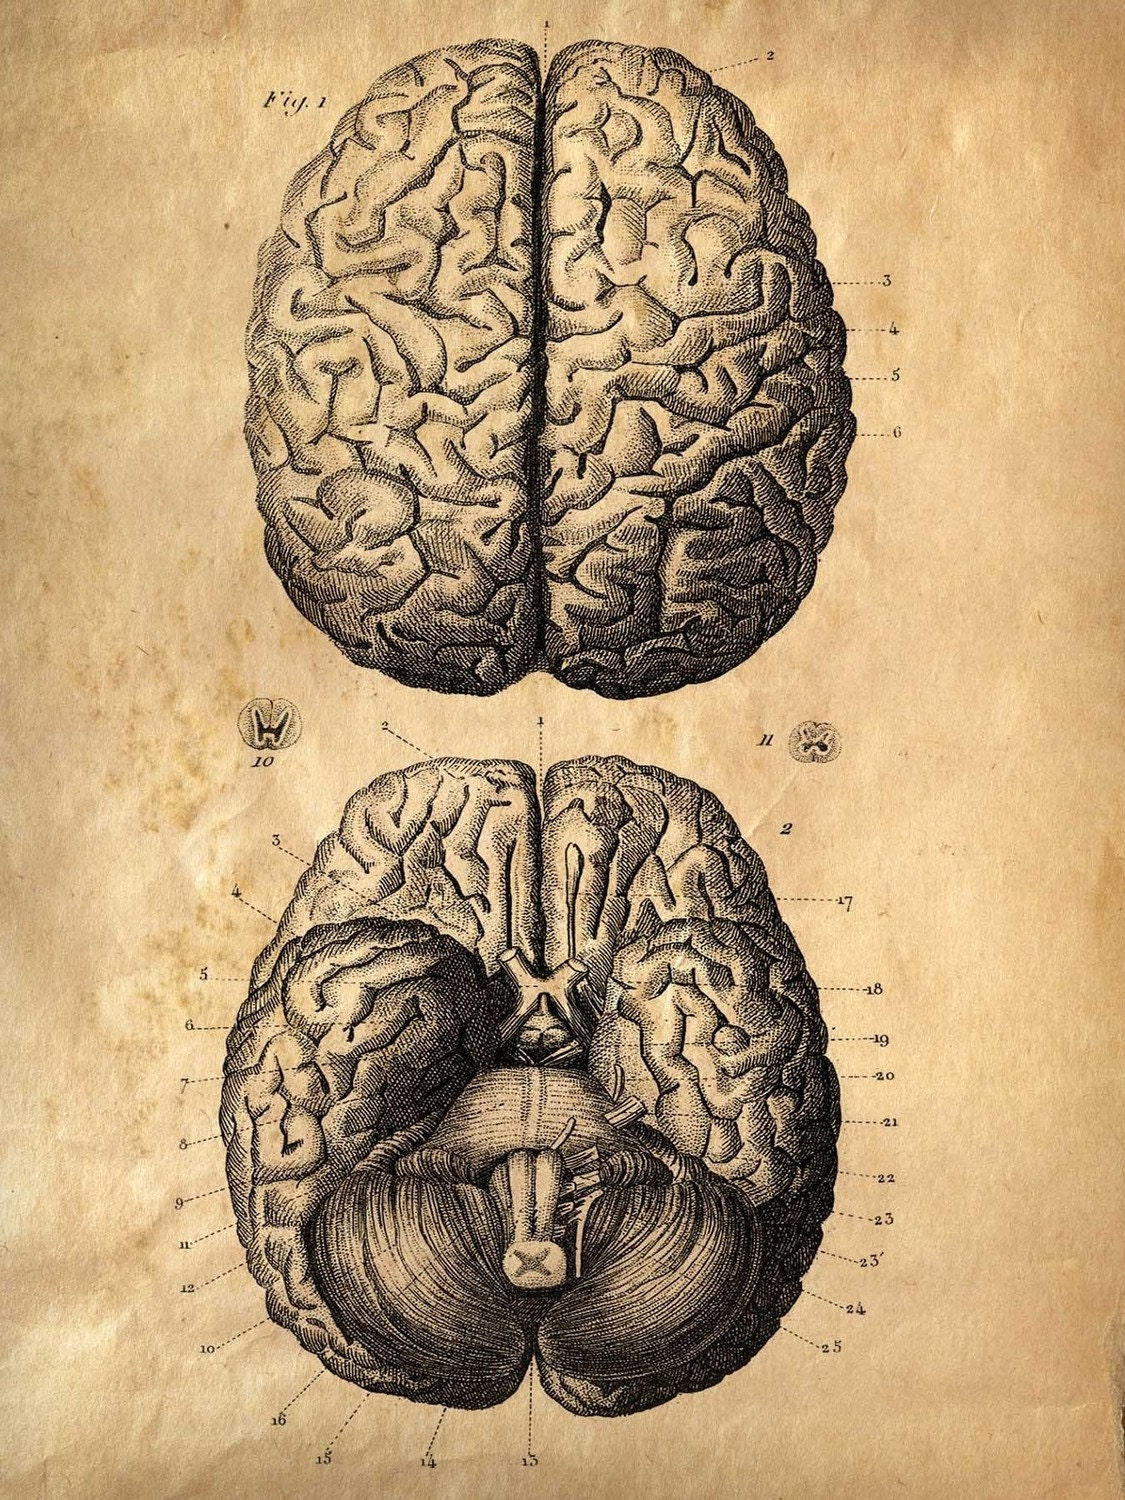 18x24 Vintage Anatomy  Brains Poster  Human Body  Zombies